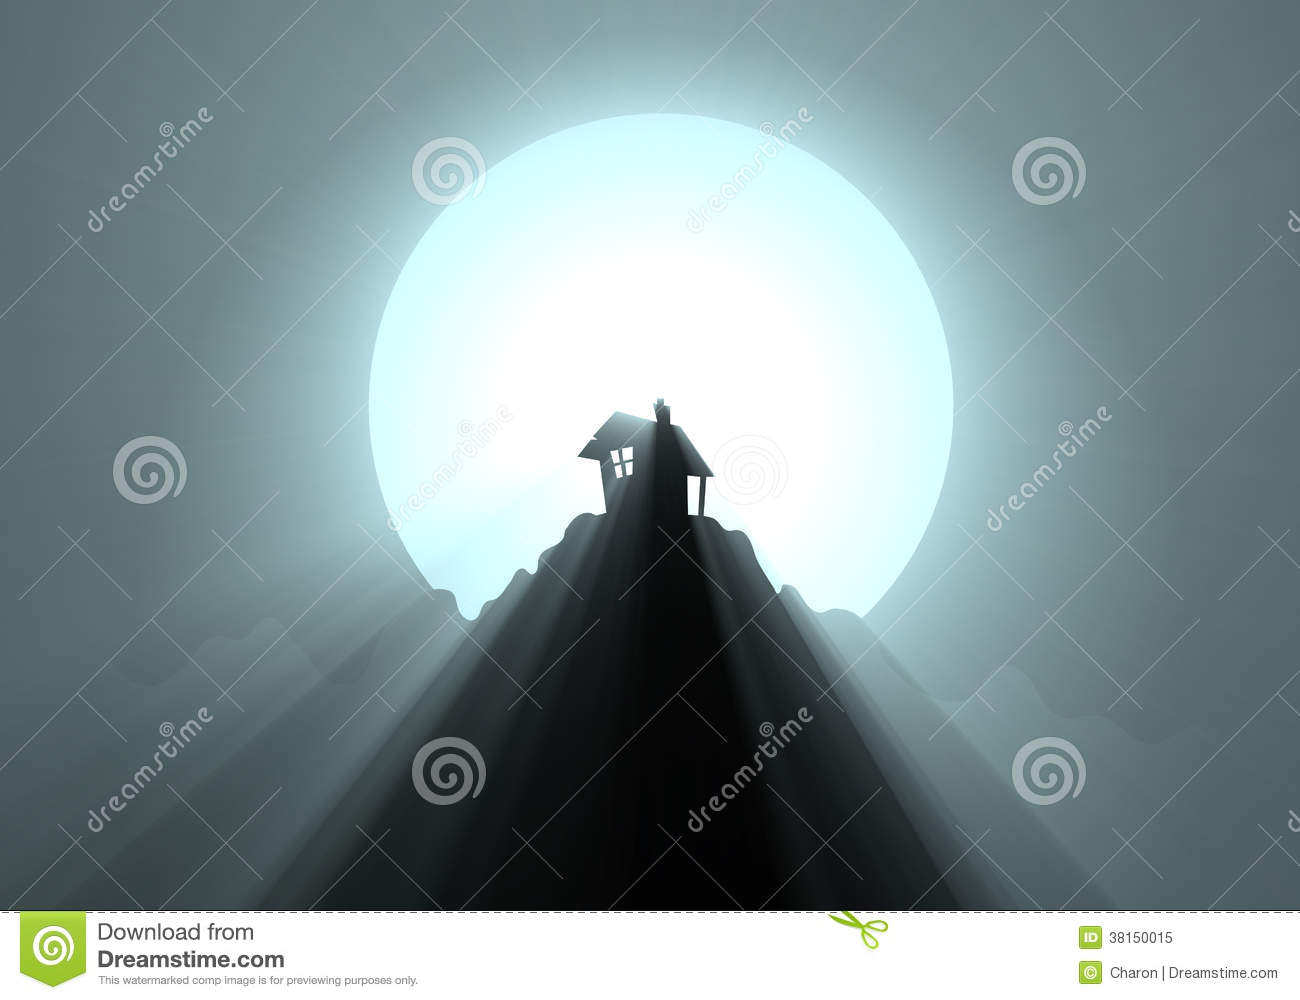 Cool Architecture Buildings E likewise Imagedgkl Danneel Harris Wedding furthermore 221440 further 9fccae812fca06de Cabin Log Minecraft House Minecraft Cabin Blueprints also Royalty Free Stock Photo House Mountain Moon Behind Image38150015. on cool house plans